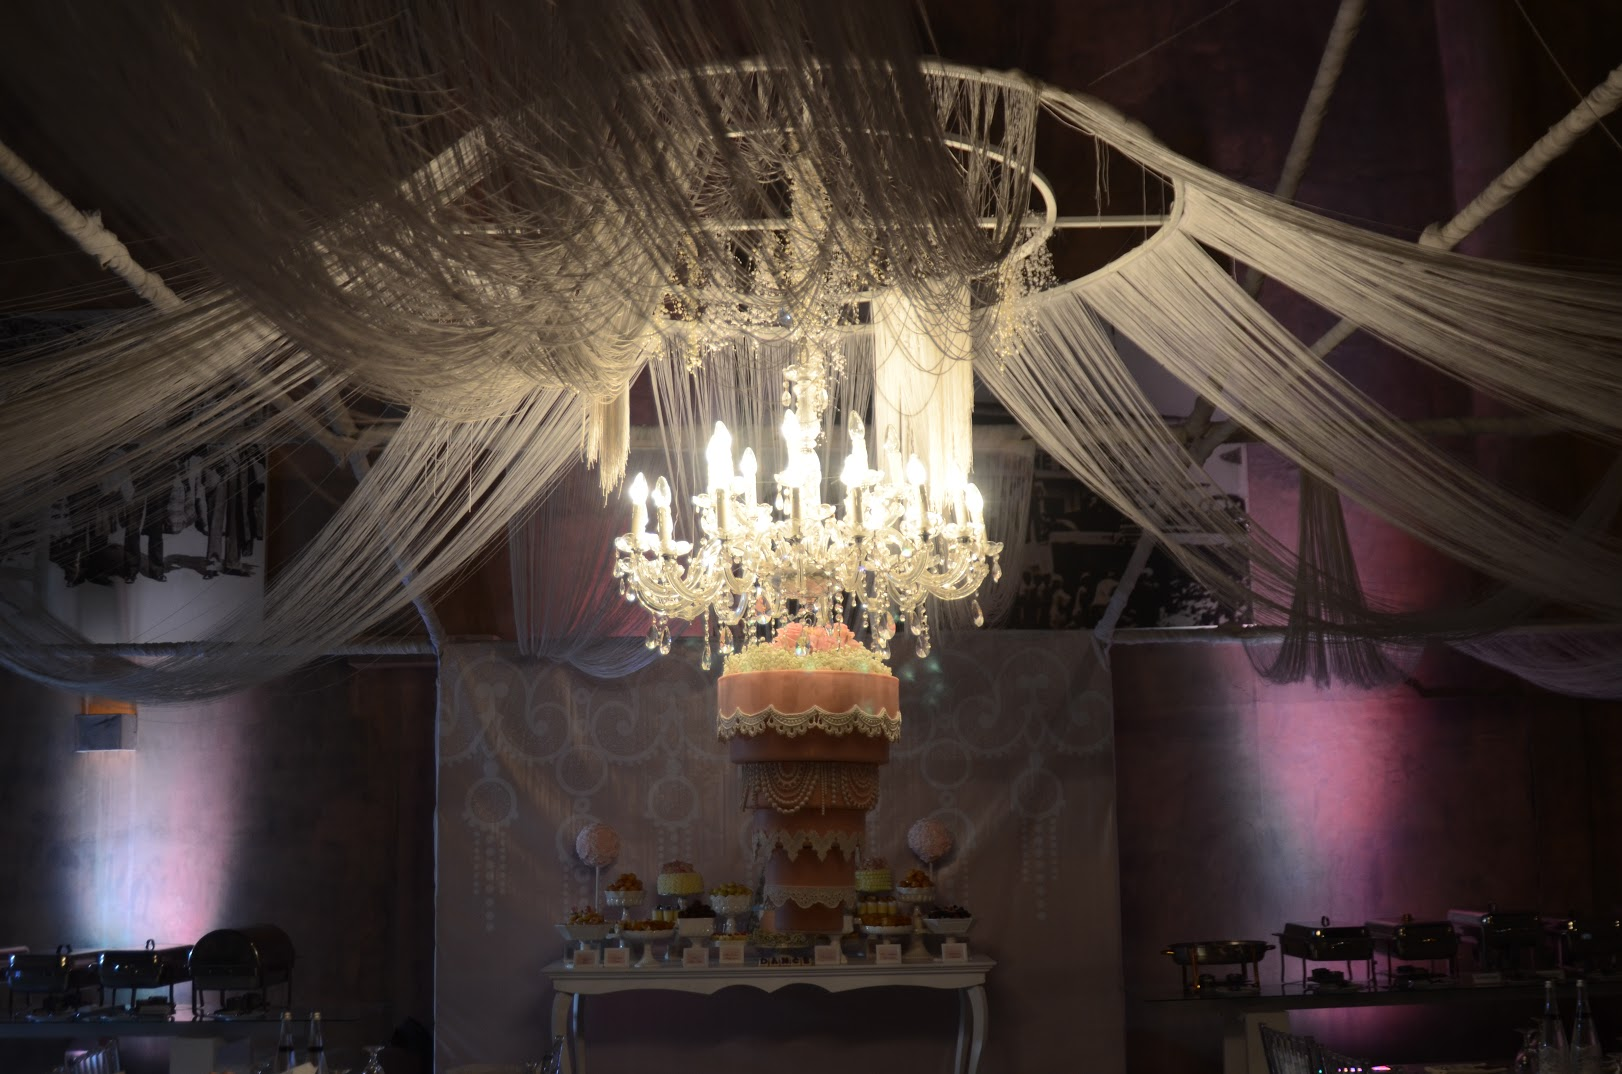 Hanging Chandelier wedding cake